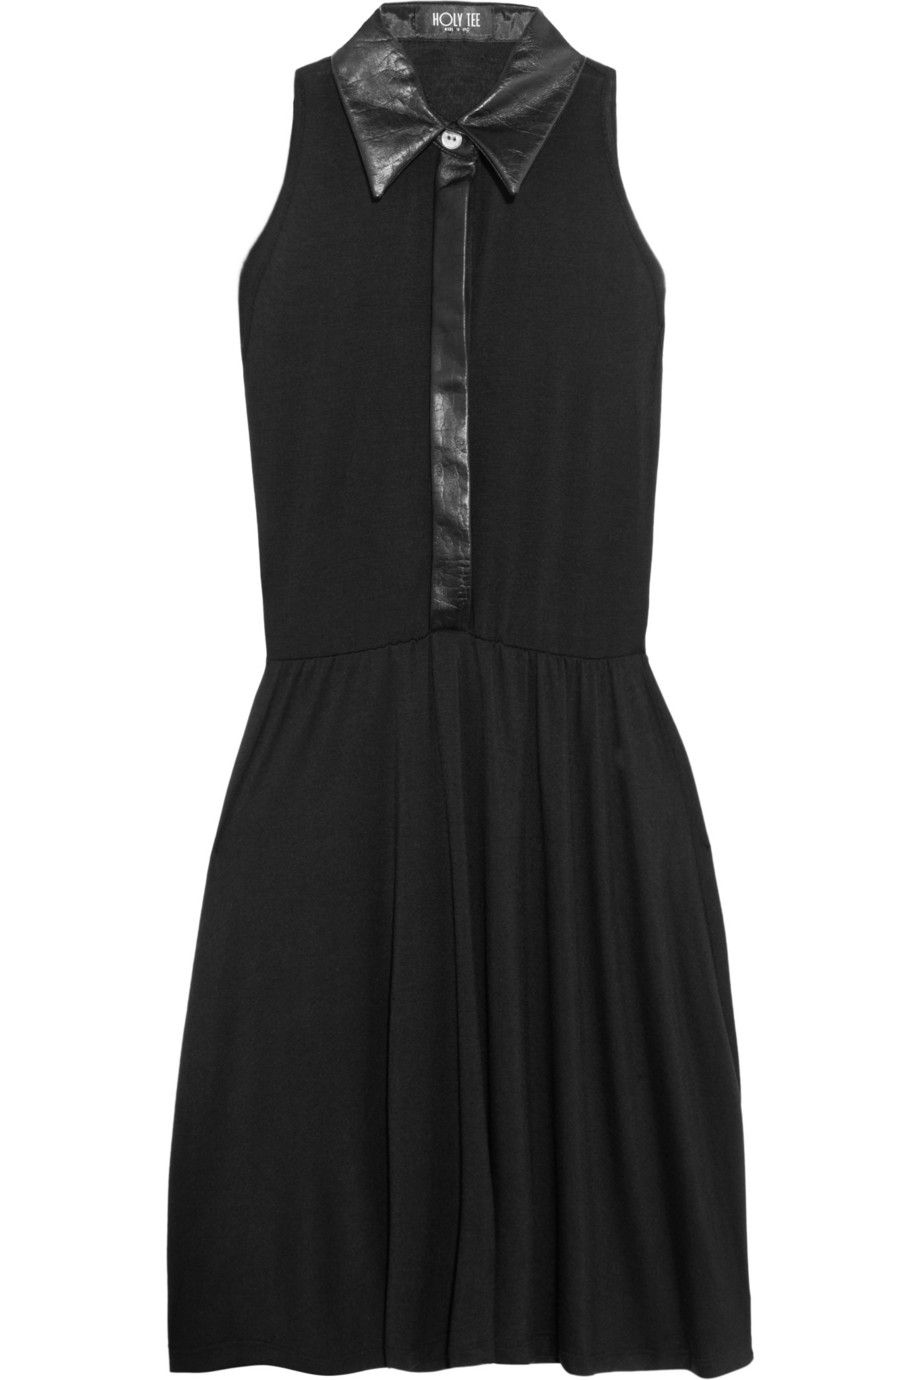 Holy Tee Charlie leather-collared jersey dress 